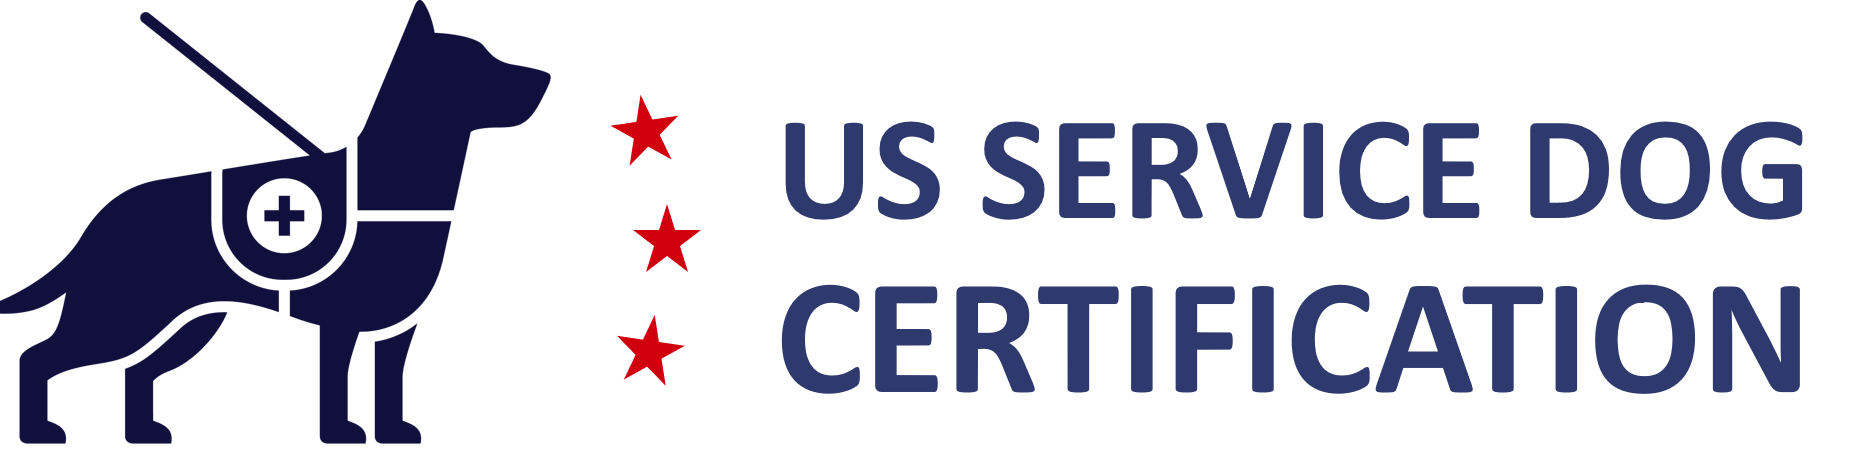 US Service Dog Certification